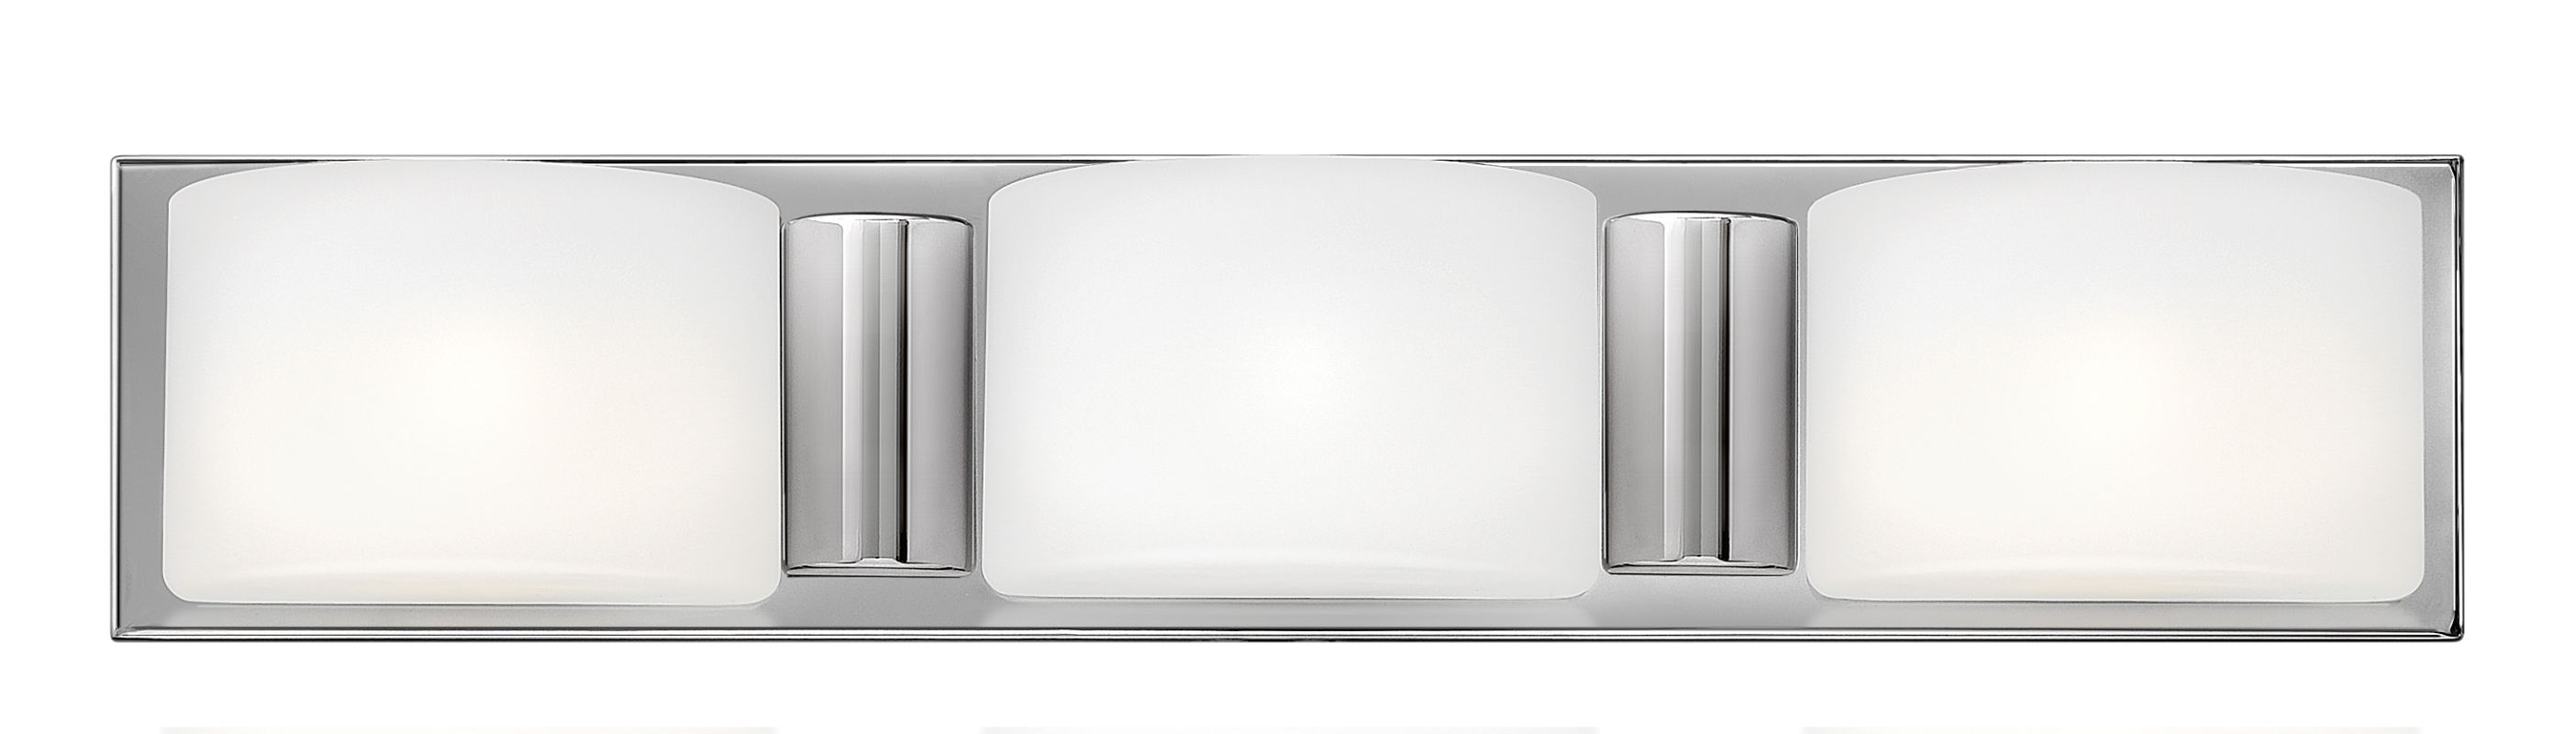 Hinkley Lighting 55483 3 Light Bathroom Vanity Light from the Daria